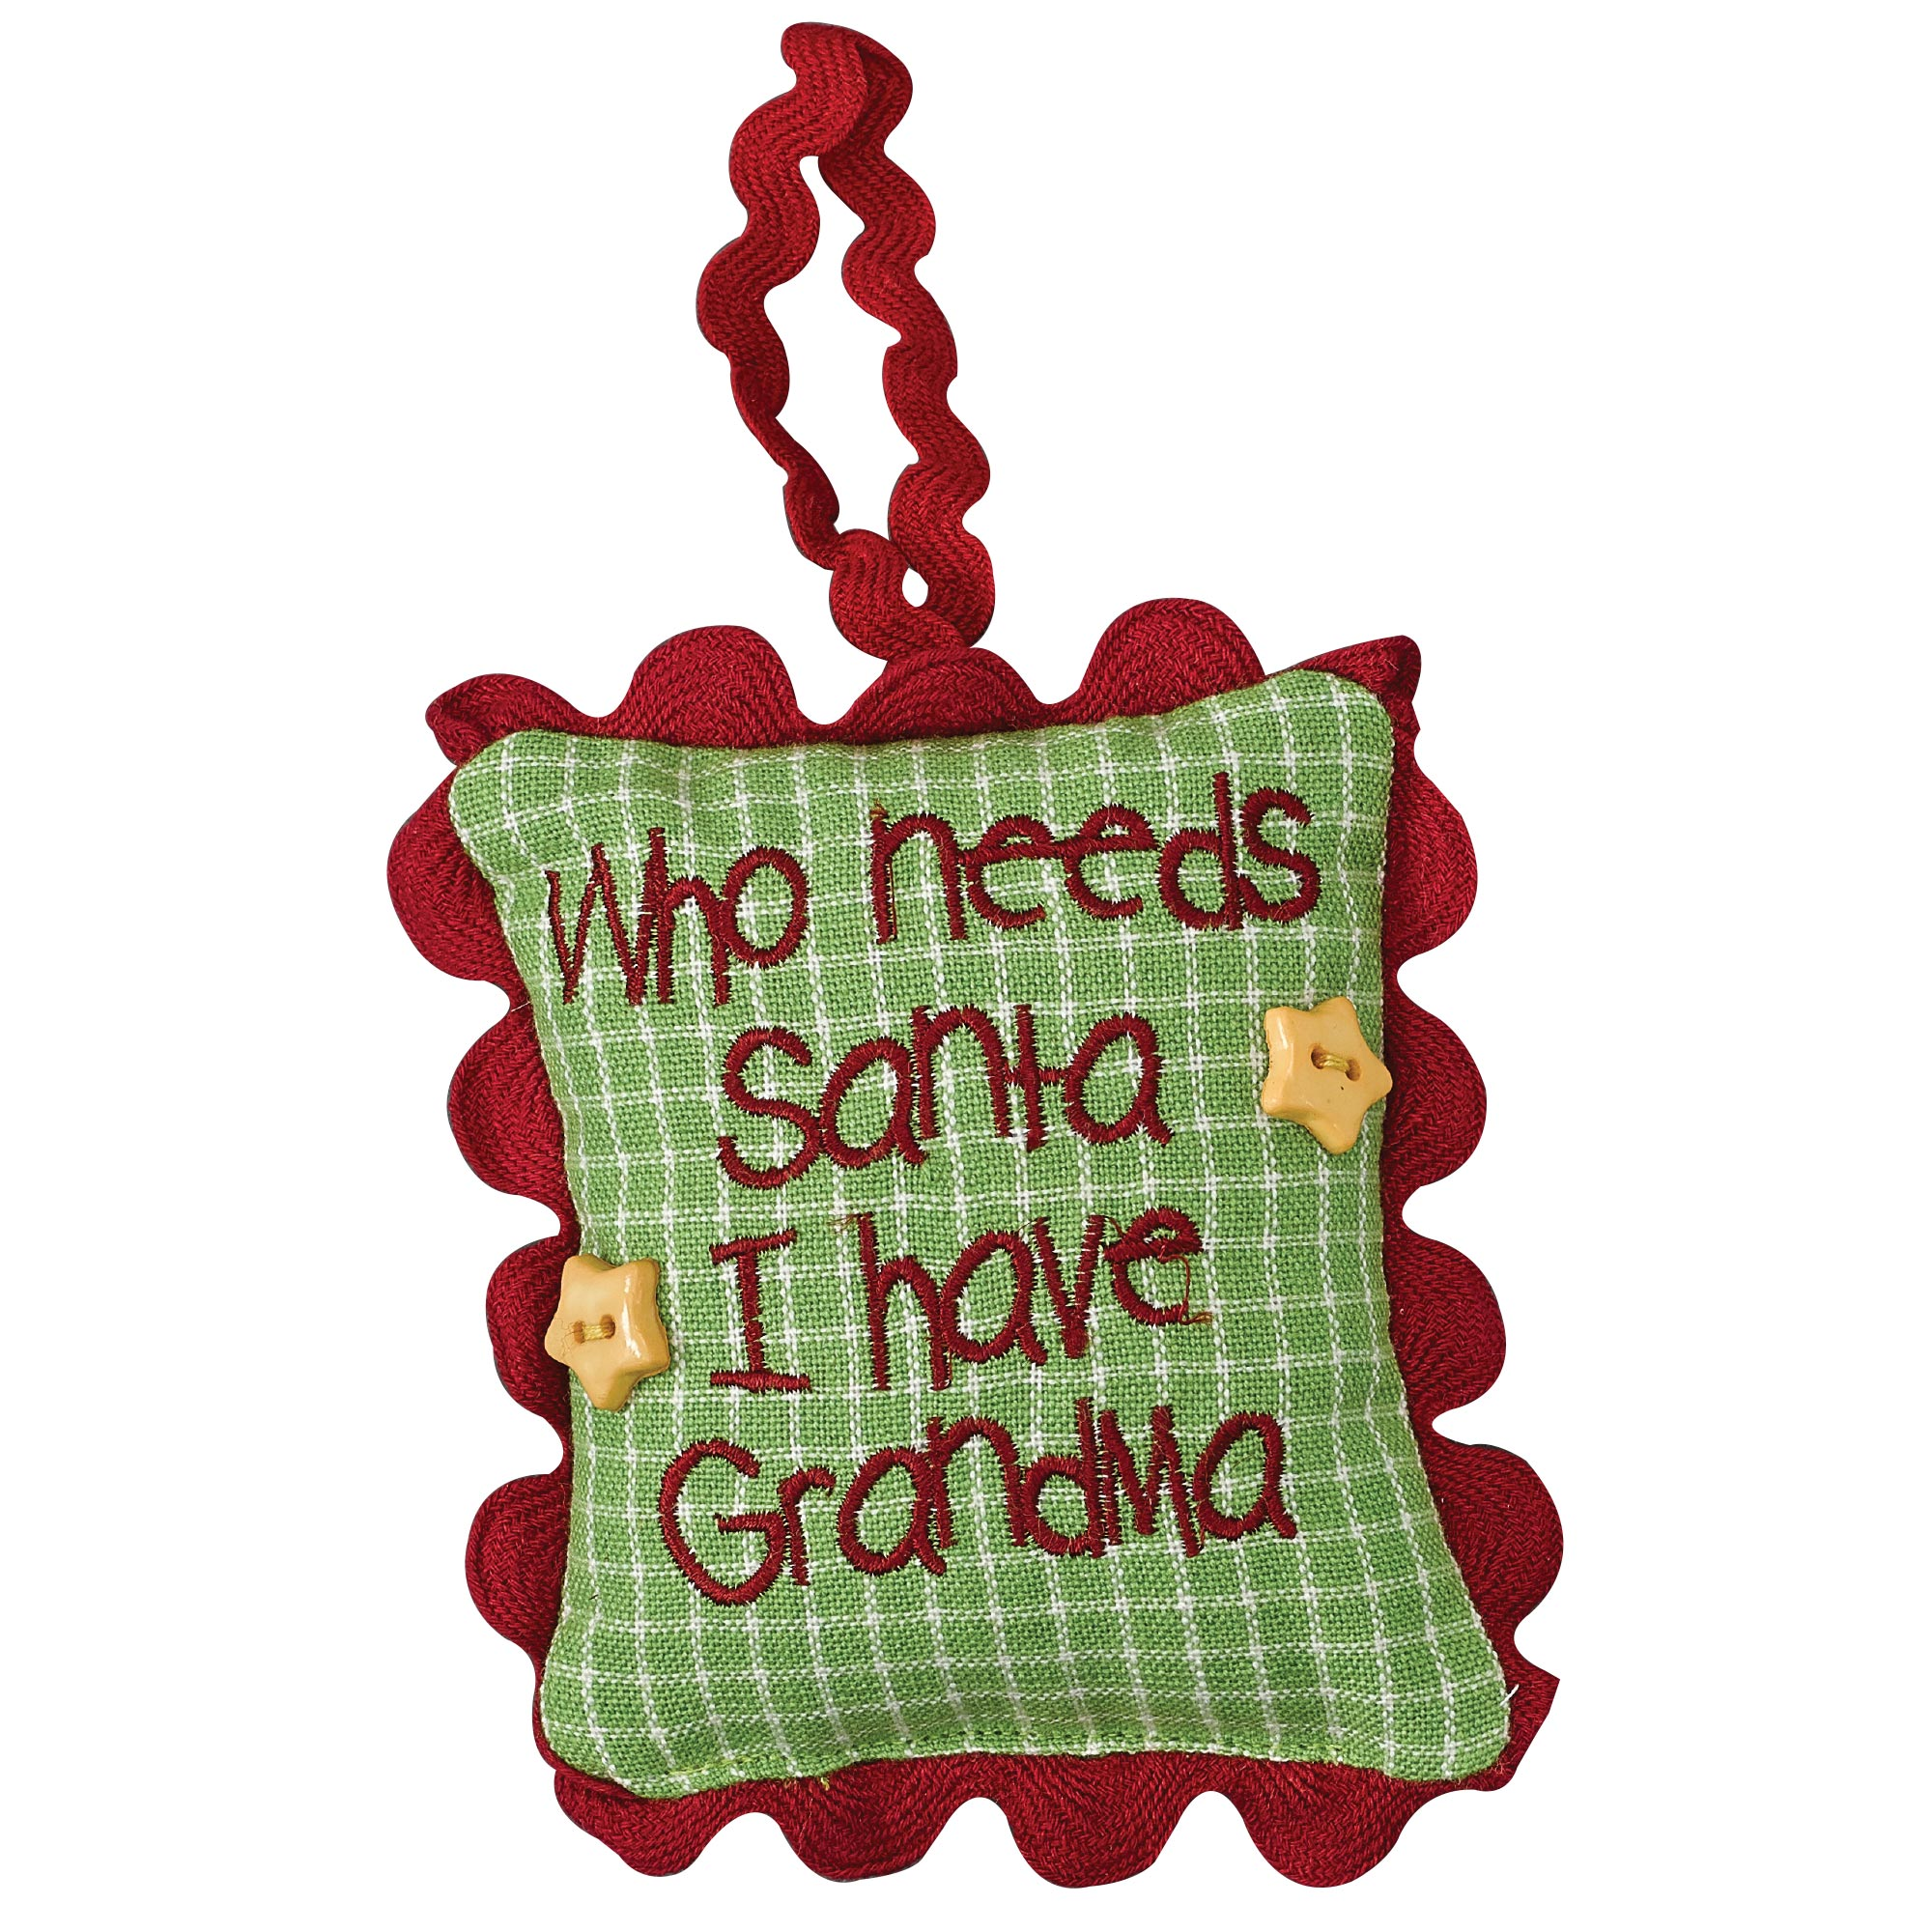 pkd-22-273-who-needs-santa-ornament-lrg